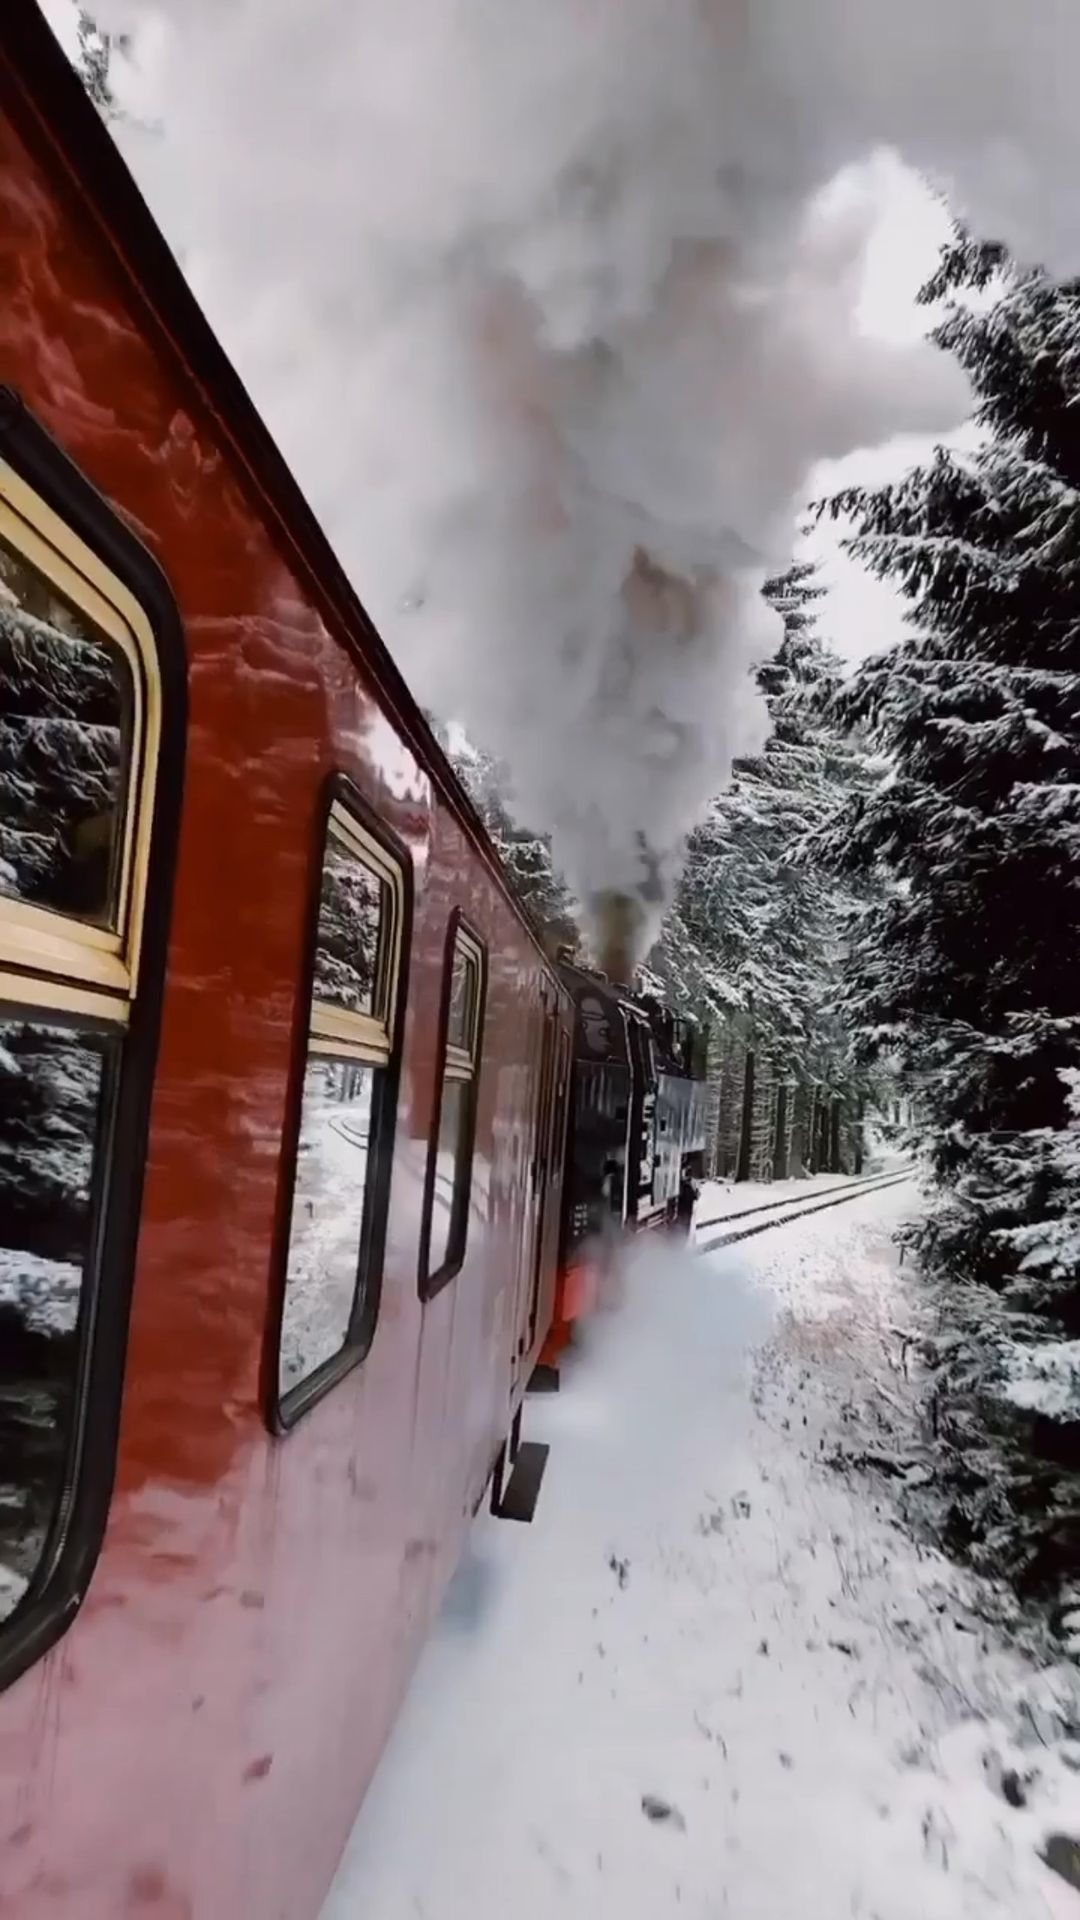 Wonderful Places On Instagram To Hogwarts Off We Go Tag Your Friends Vid By Evolumina Won Winter Photography Iphone Wallpaper Winter Train